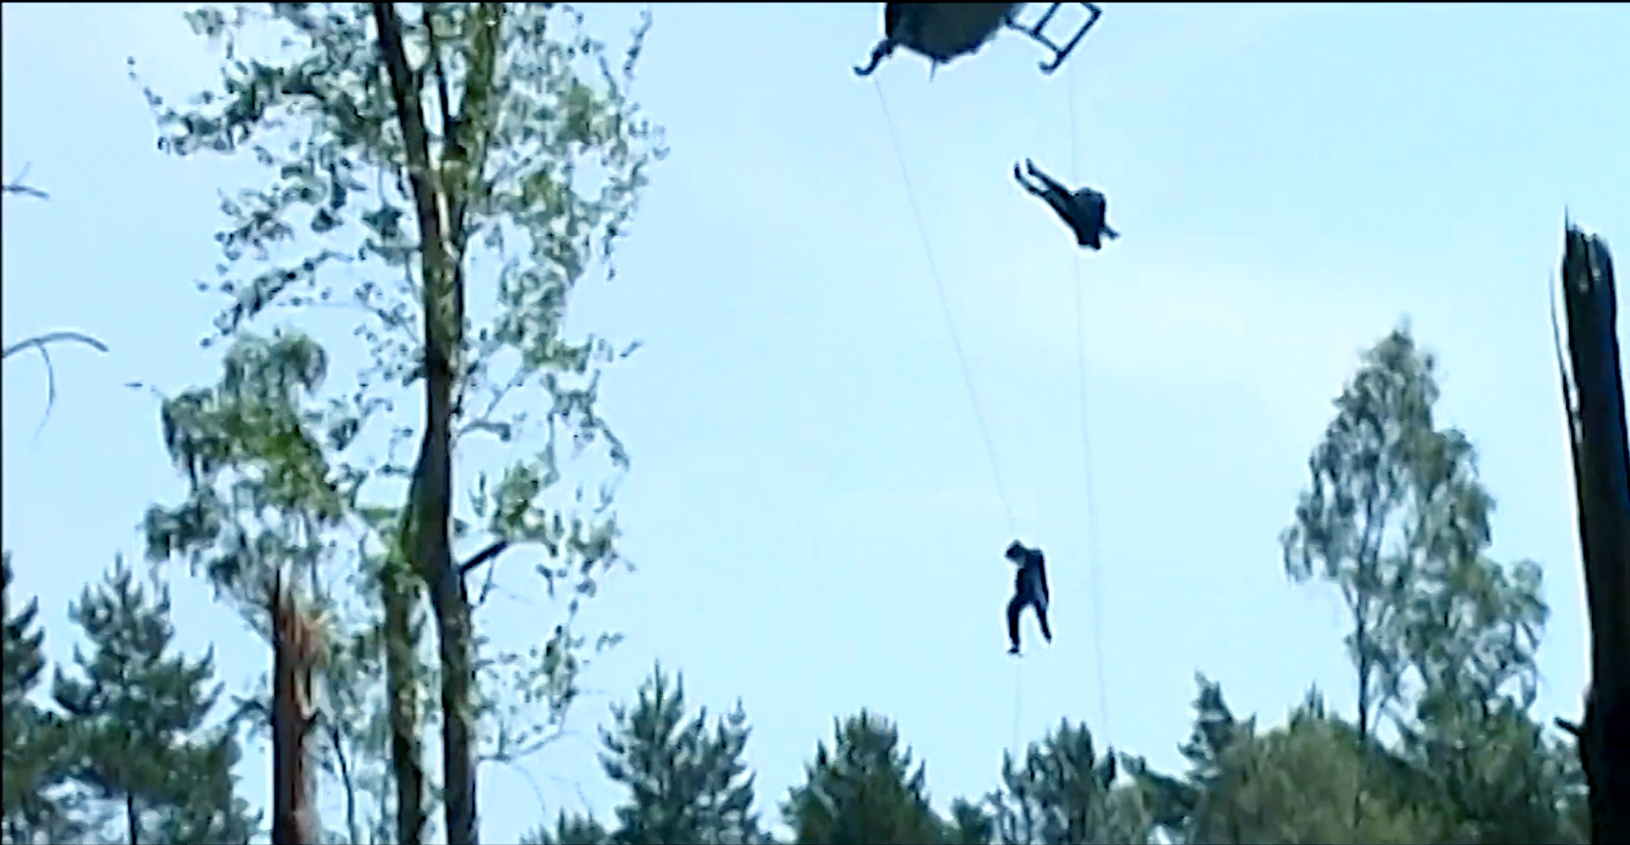 Martin Goeres, Stuntperforming, rappelling helicopter